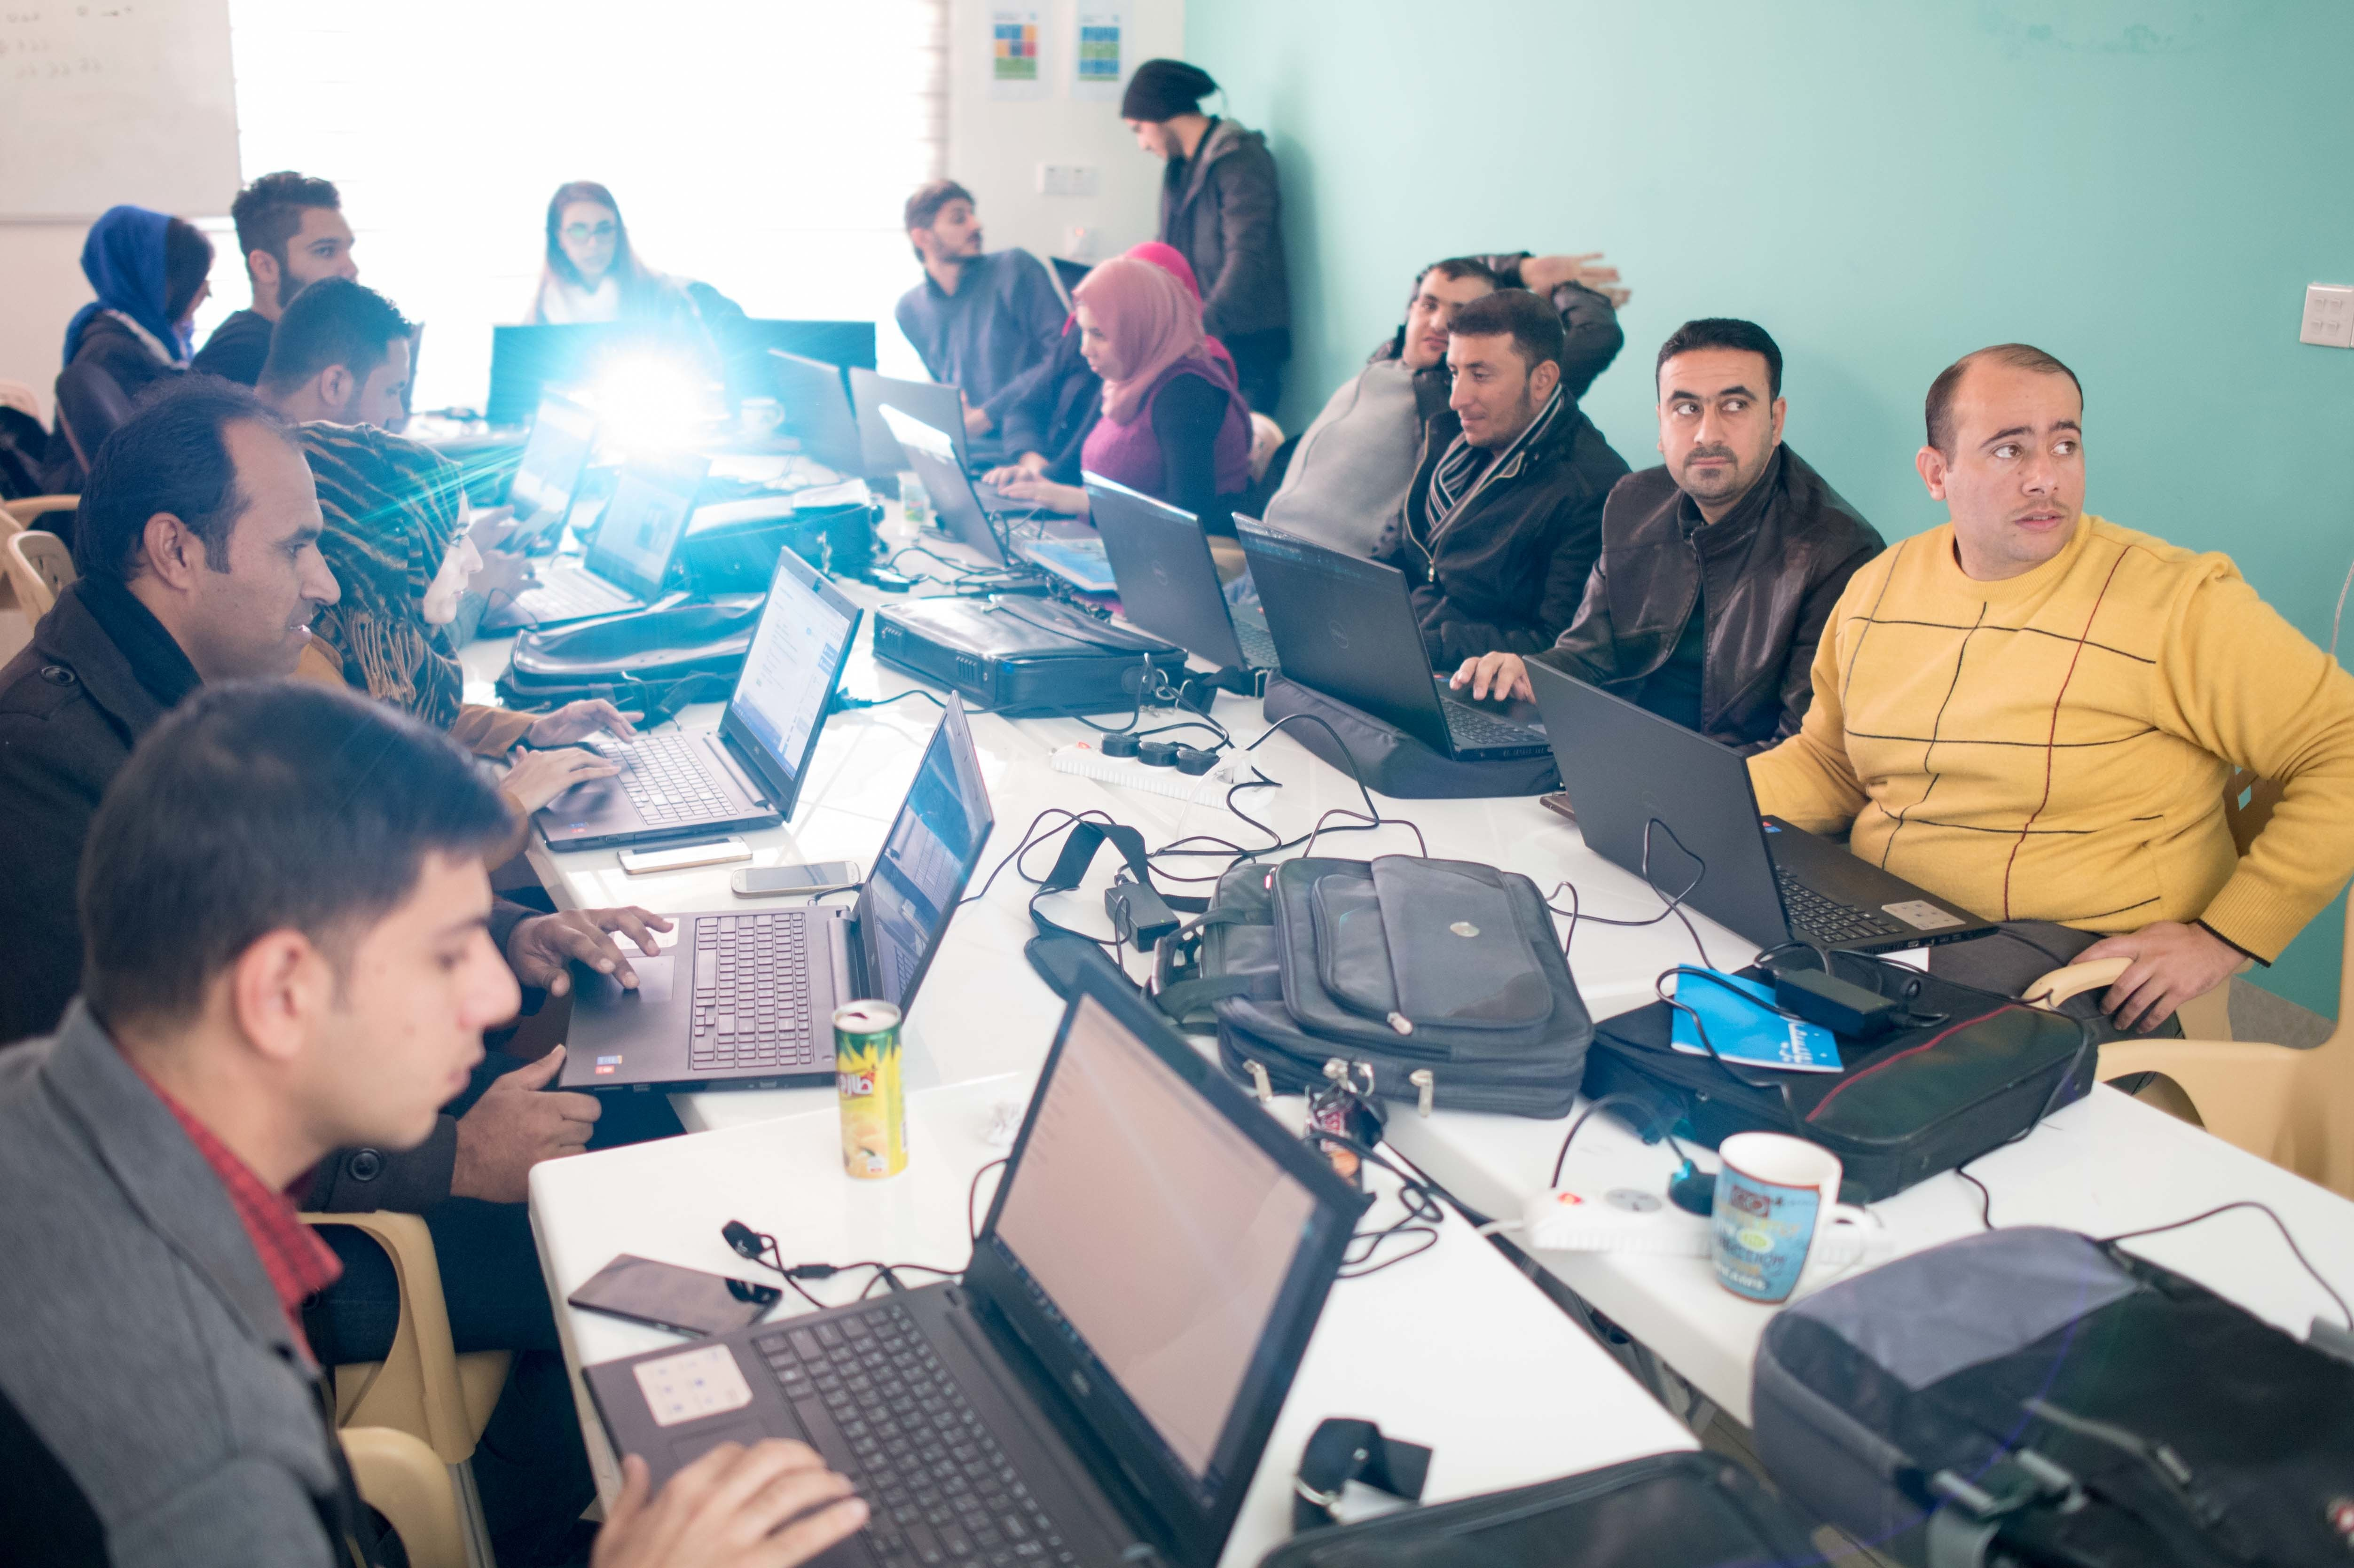 The morning class at Re:Coded in Erbil, Iraq